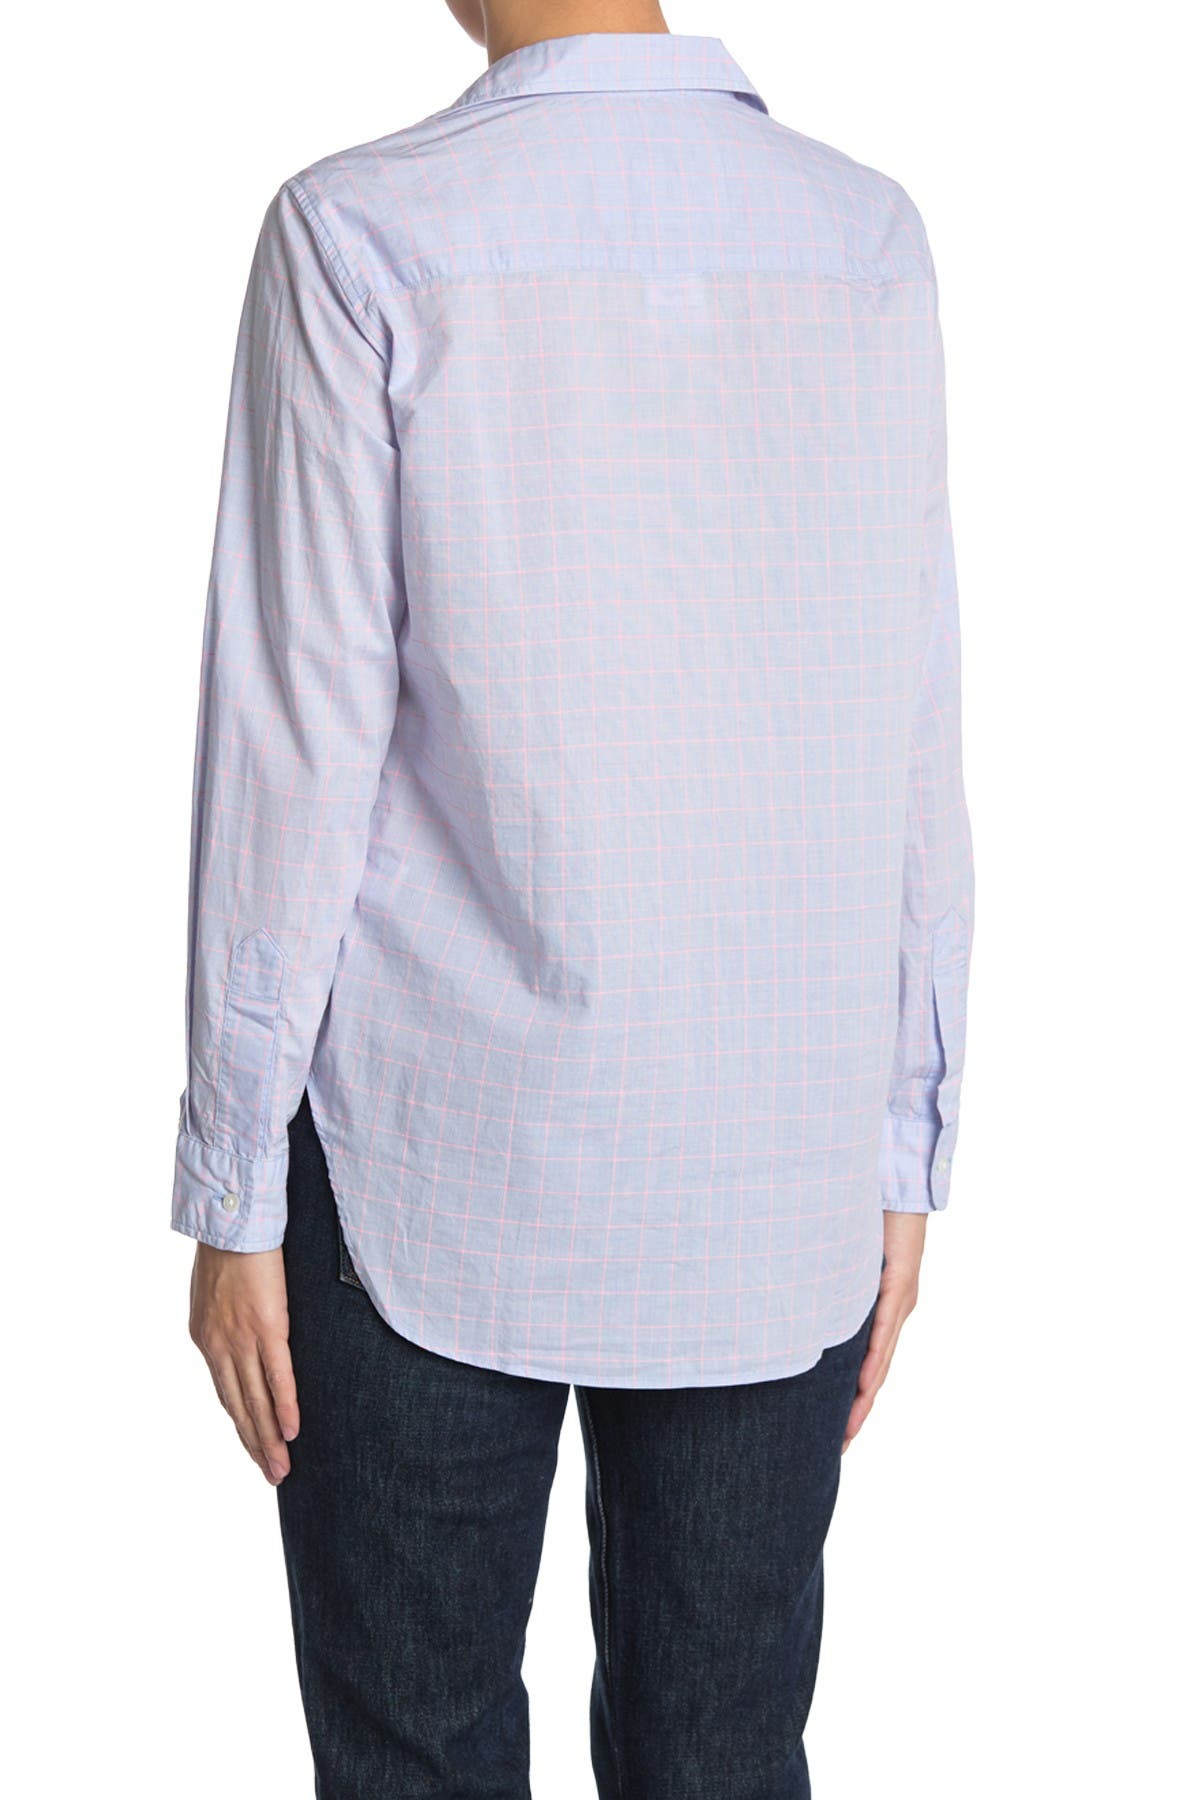 Image of FRANK & EILEEN Frank Woven Button-Up